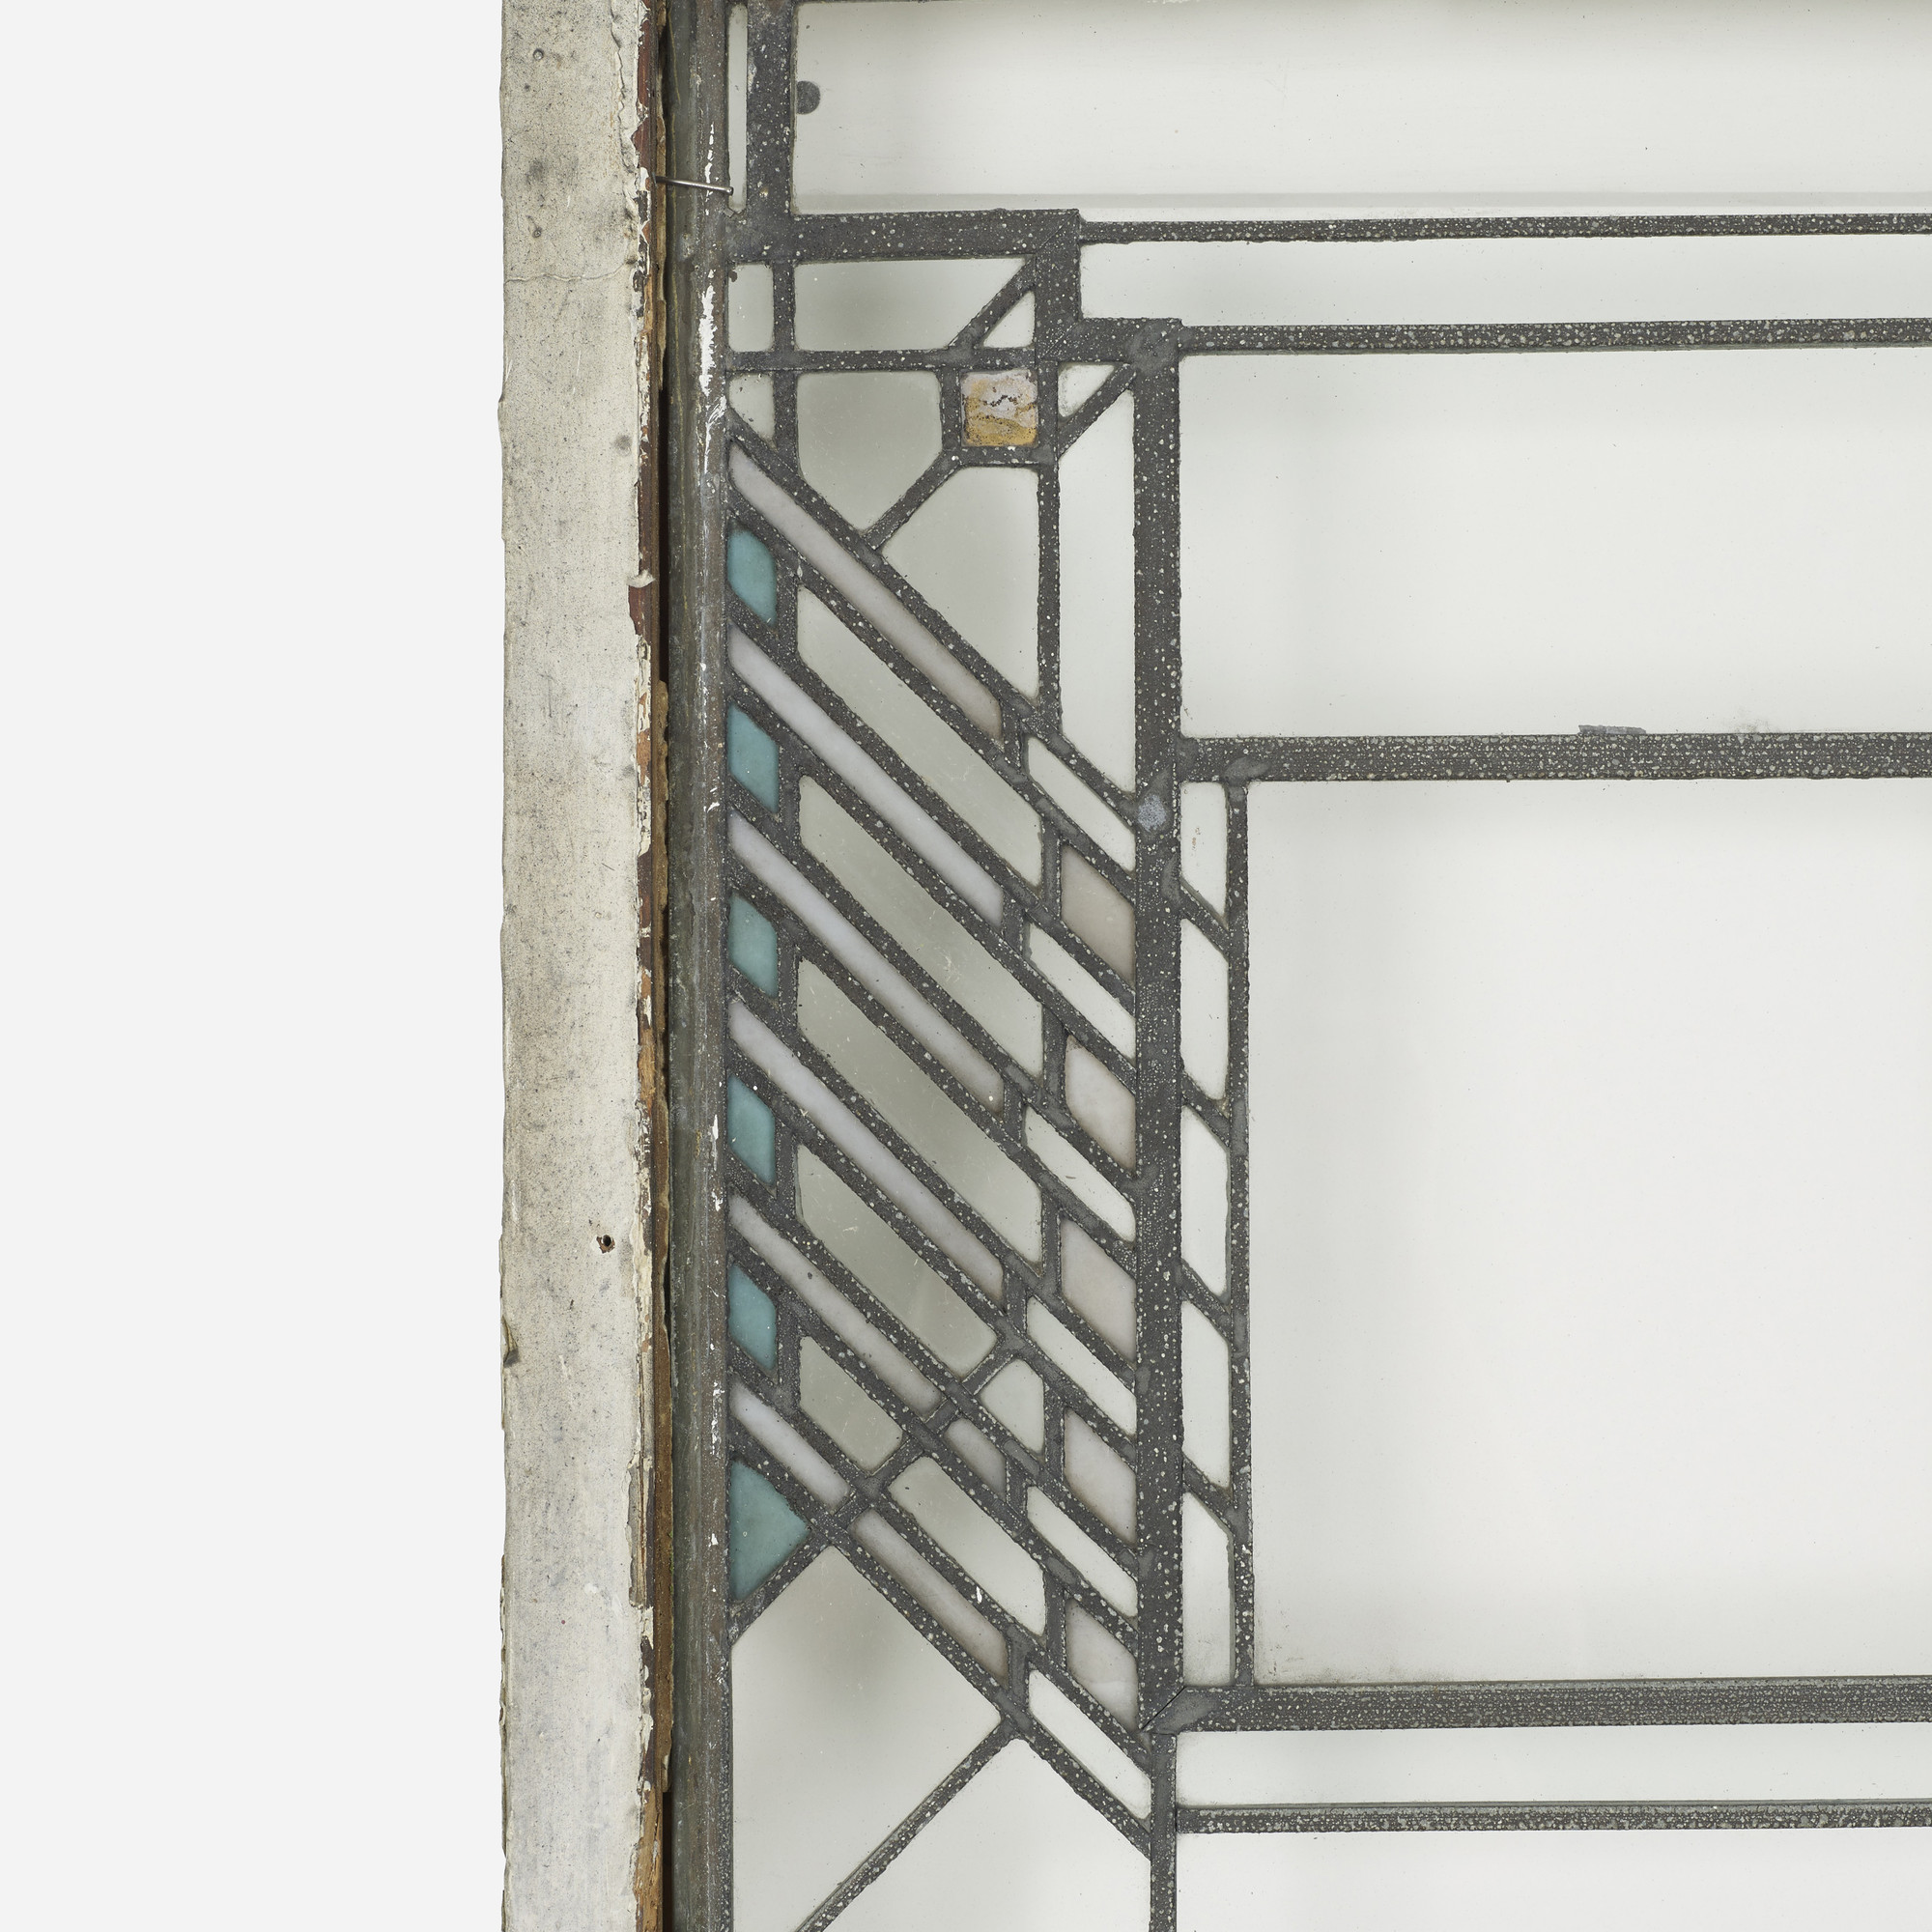 127_2_design_december_2015_frank_lloyd_wright_window_ensemble_from_the_oscar_steffens_house_chicago_illinois__wright_auction